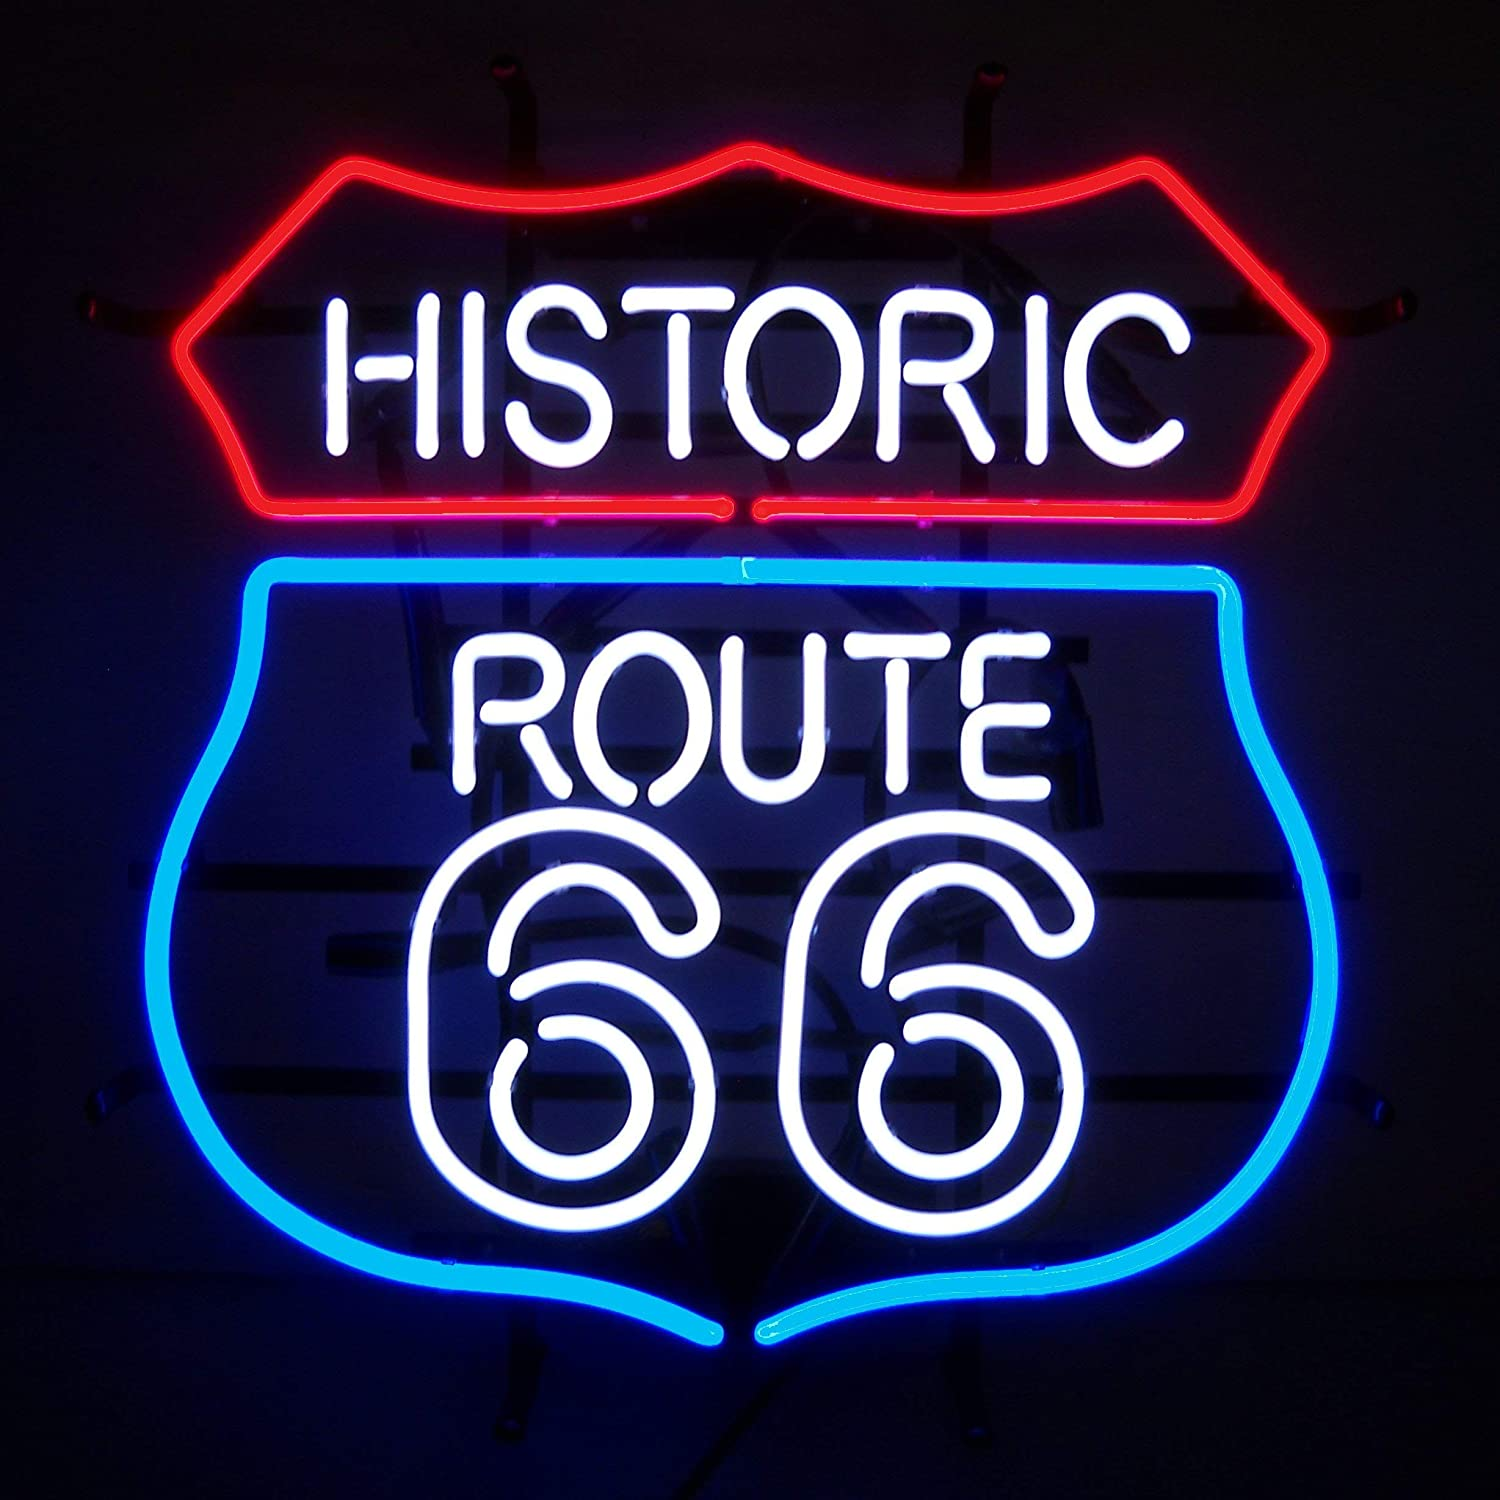 Amazon.com: Neonetics Historic Route 66 NEON - Cartel: Home ...